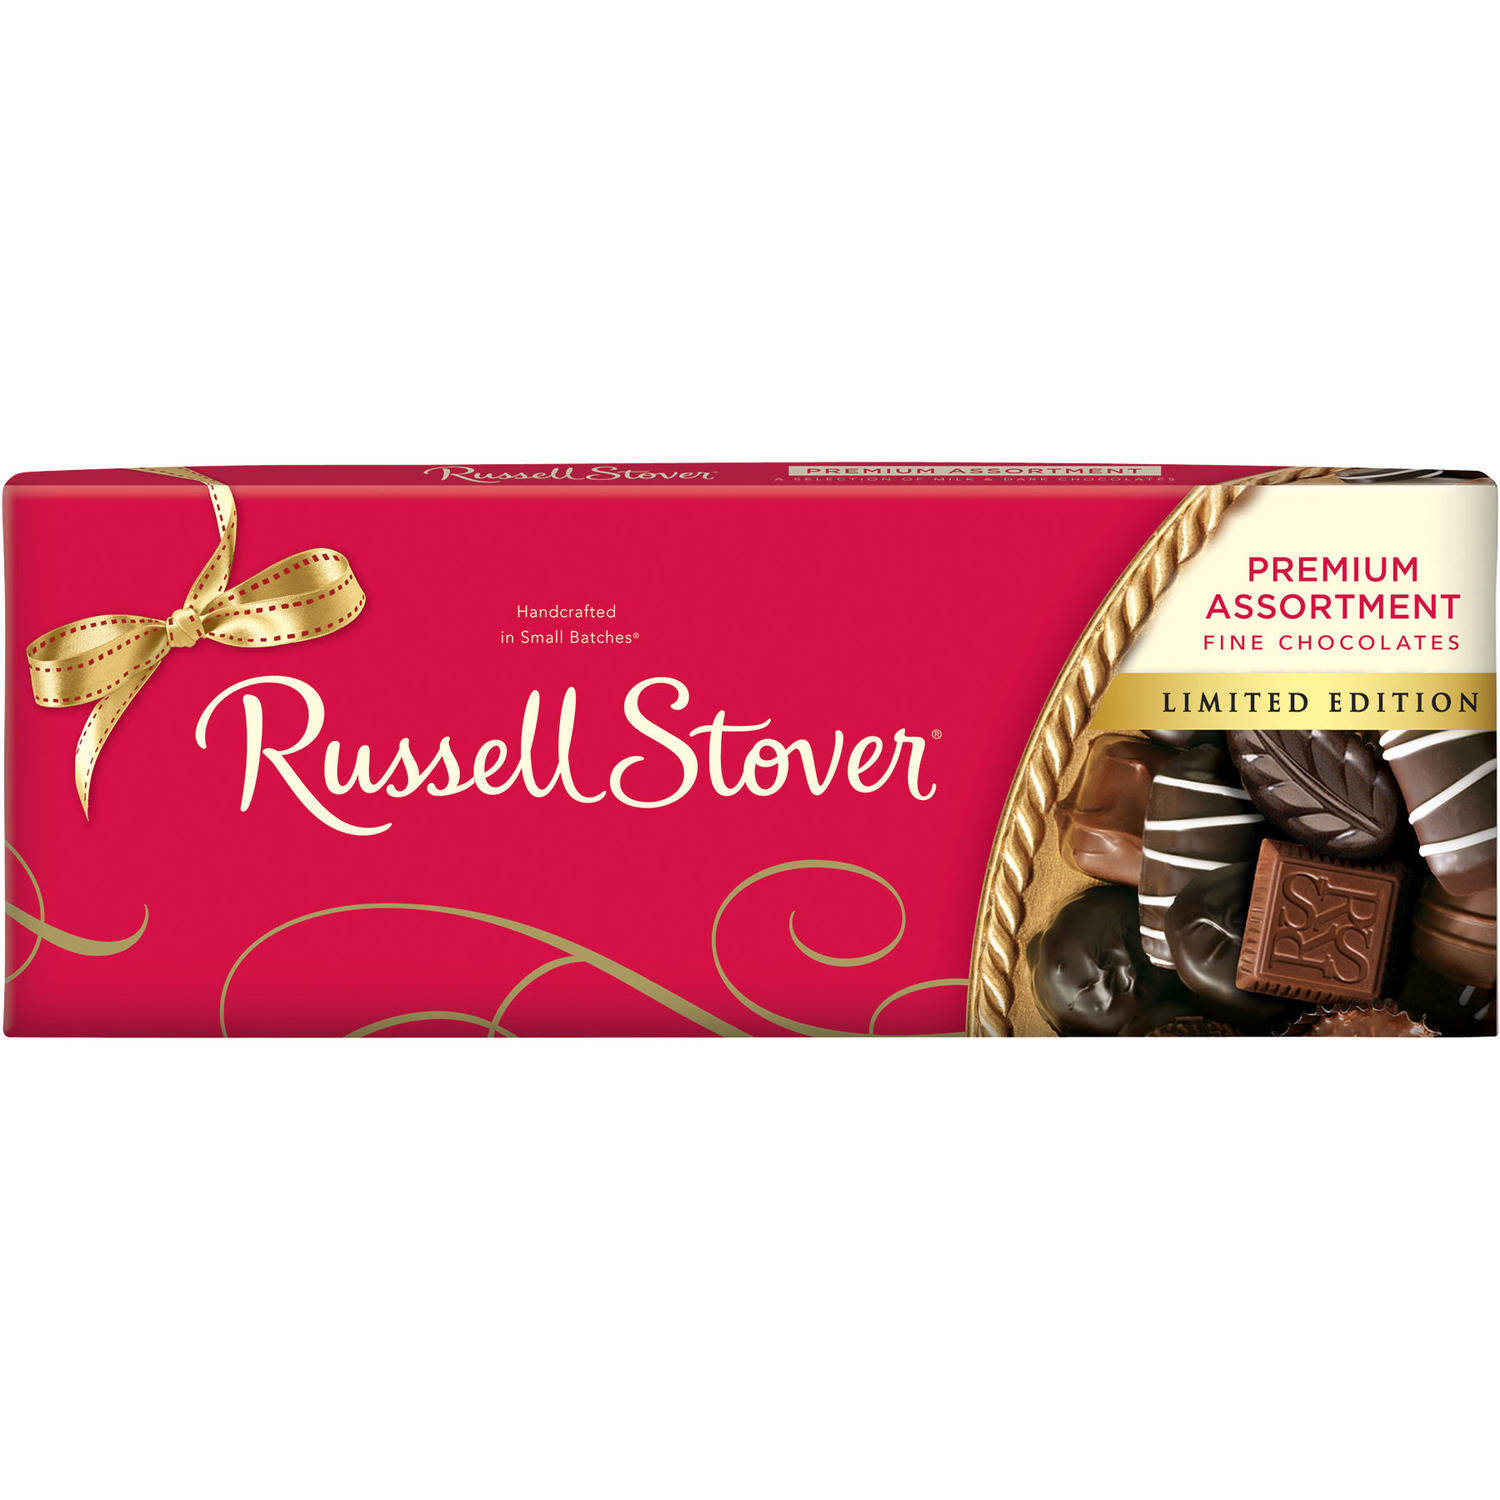 Russell Stover Candy & Gum - Walmart.com